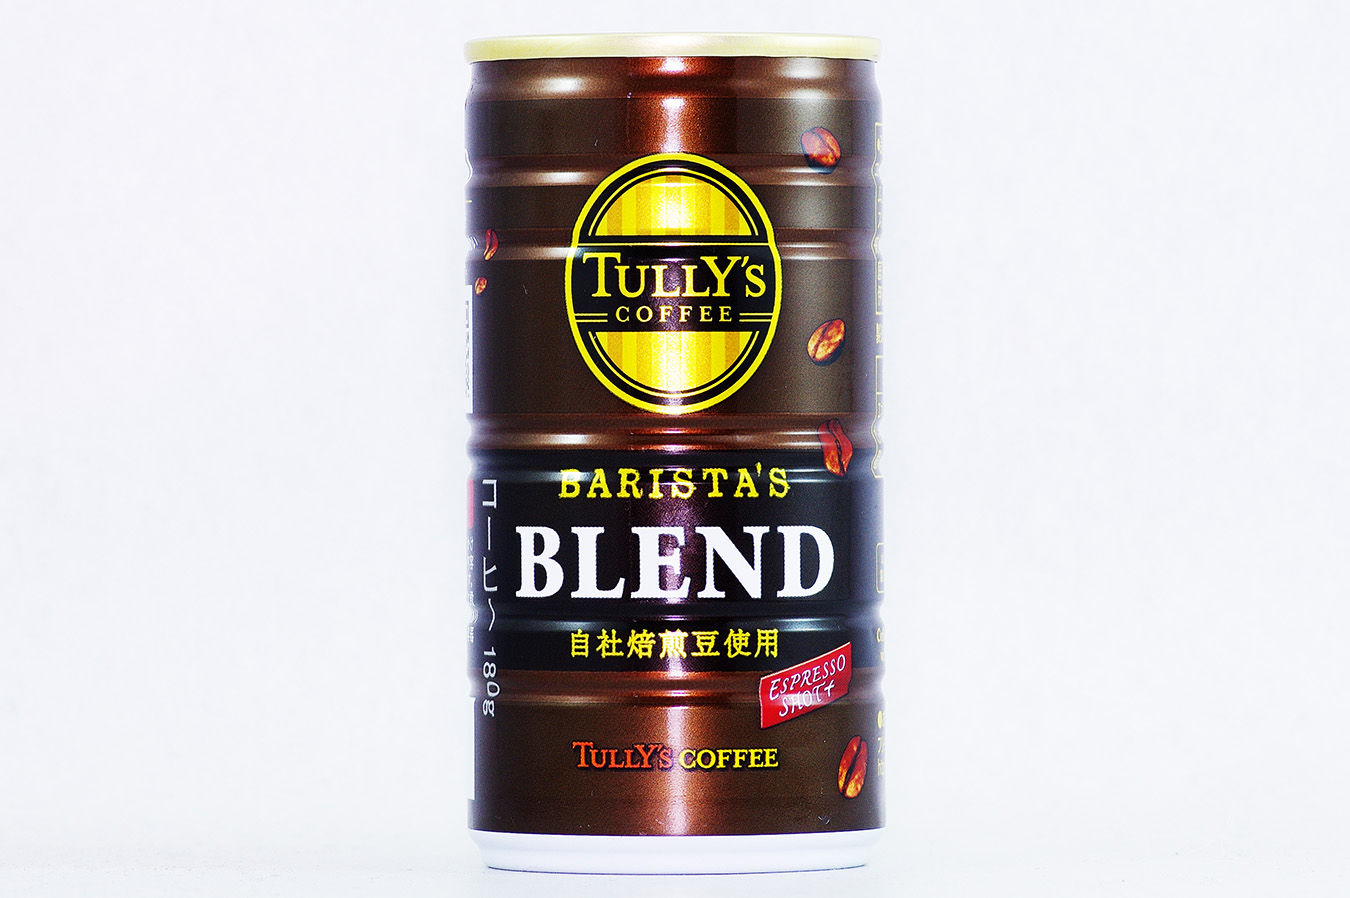 TULLY'S COFFEE BARISTA'S BLEND 2016年10月